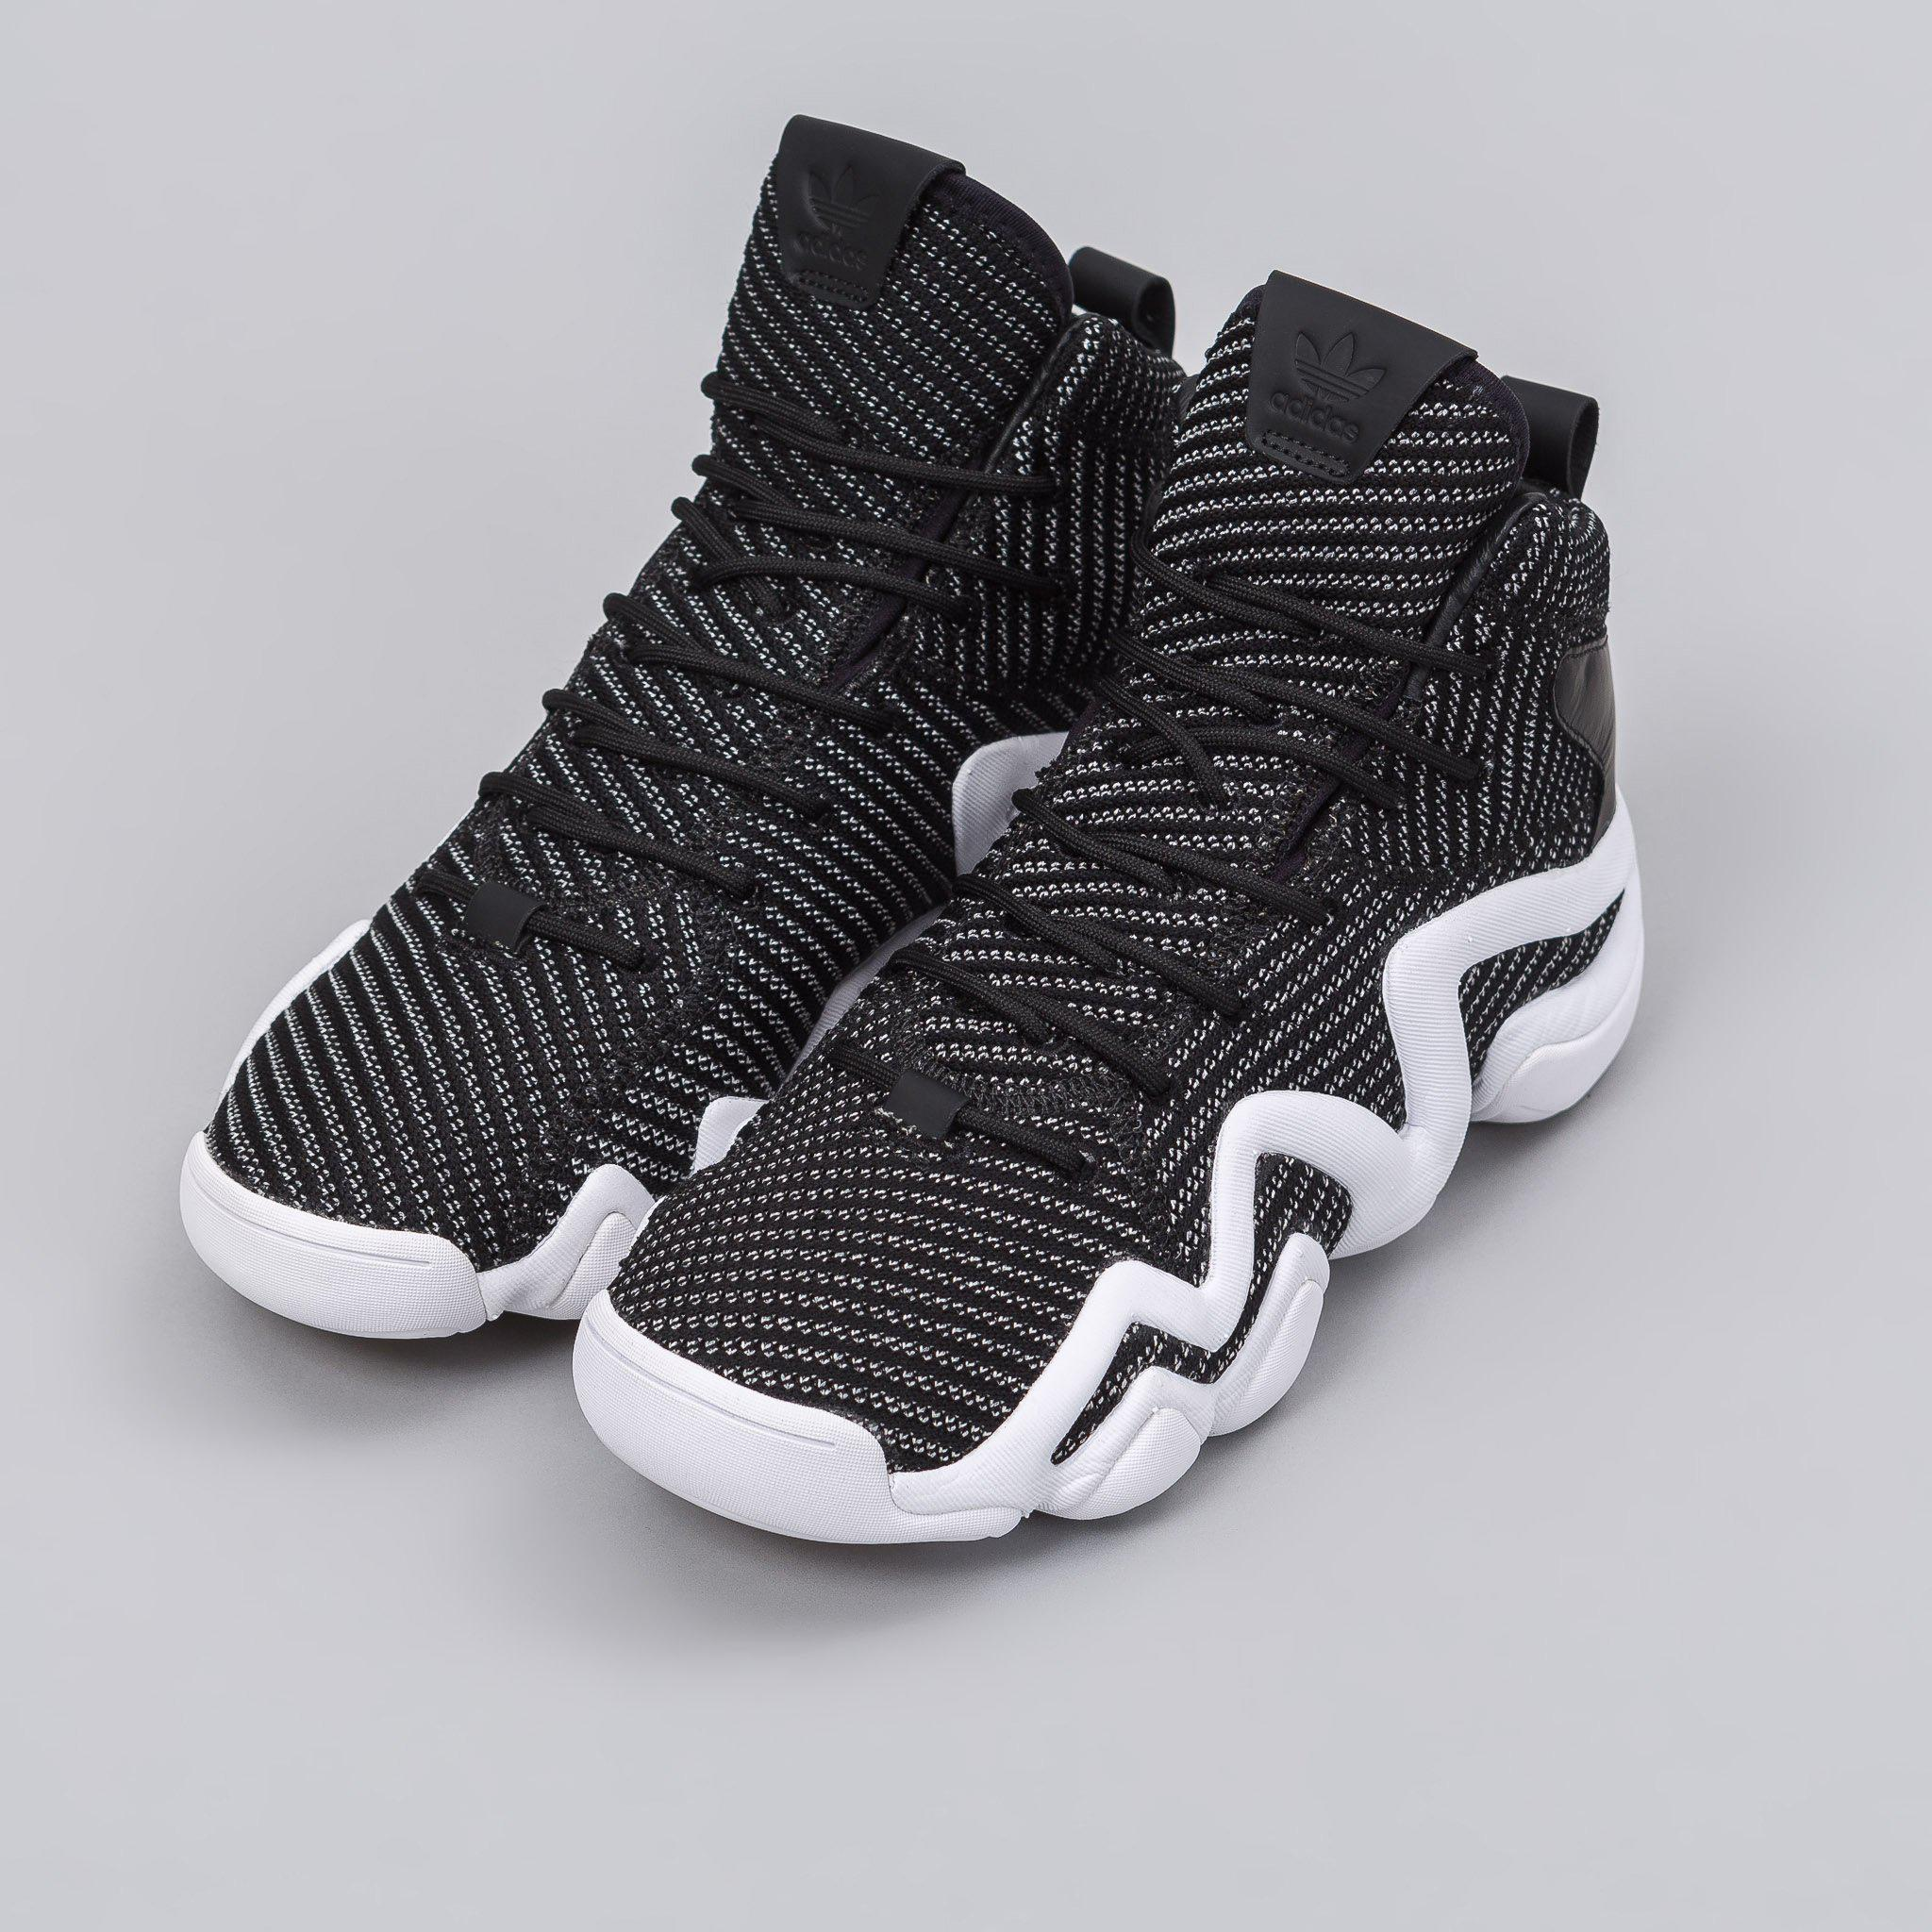 best website 9fb2f abcdd Lyst - adidas Originals Crazy 8 Adv Primeknit In Core Blacks